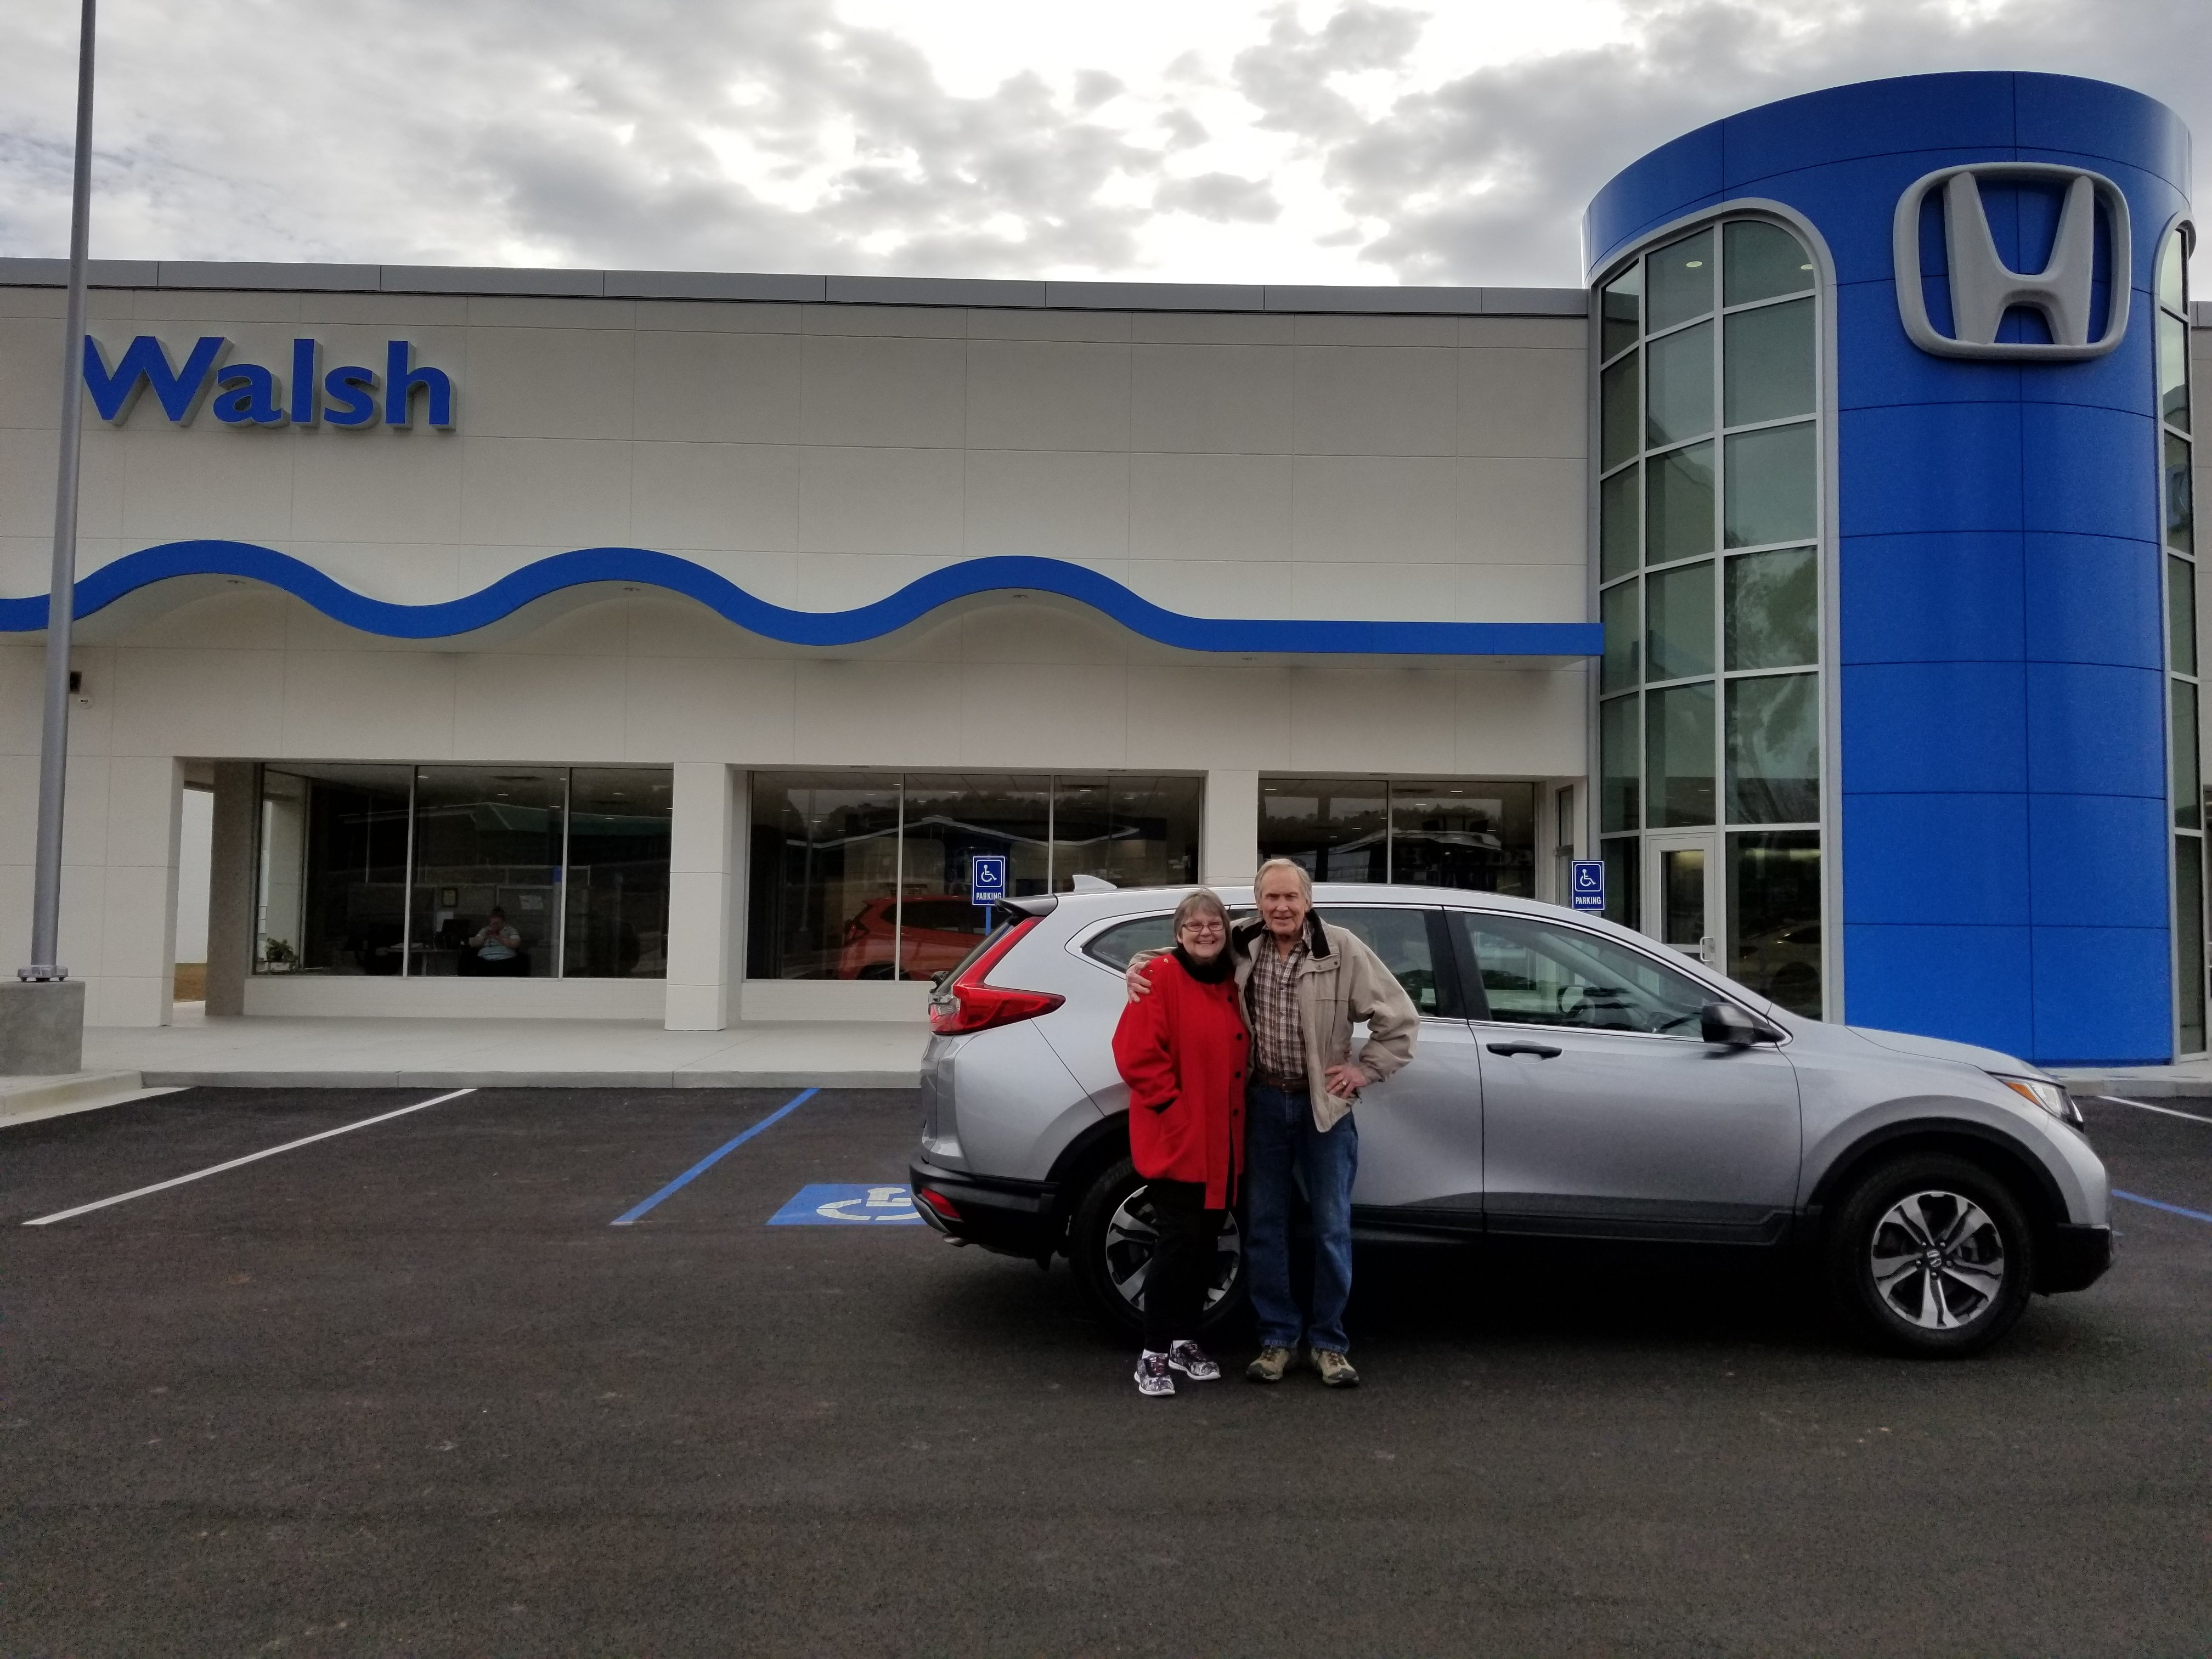 Walsh in the Community | Walsh Honda | Become Involved Today